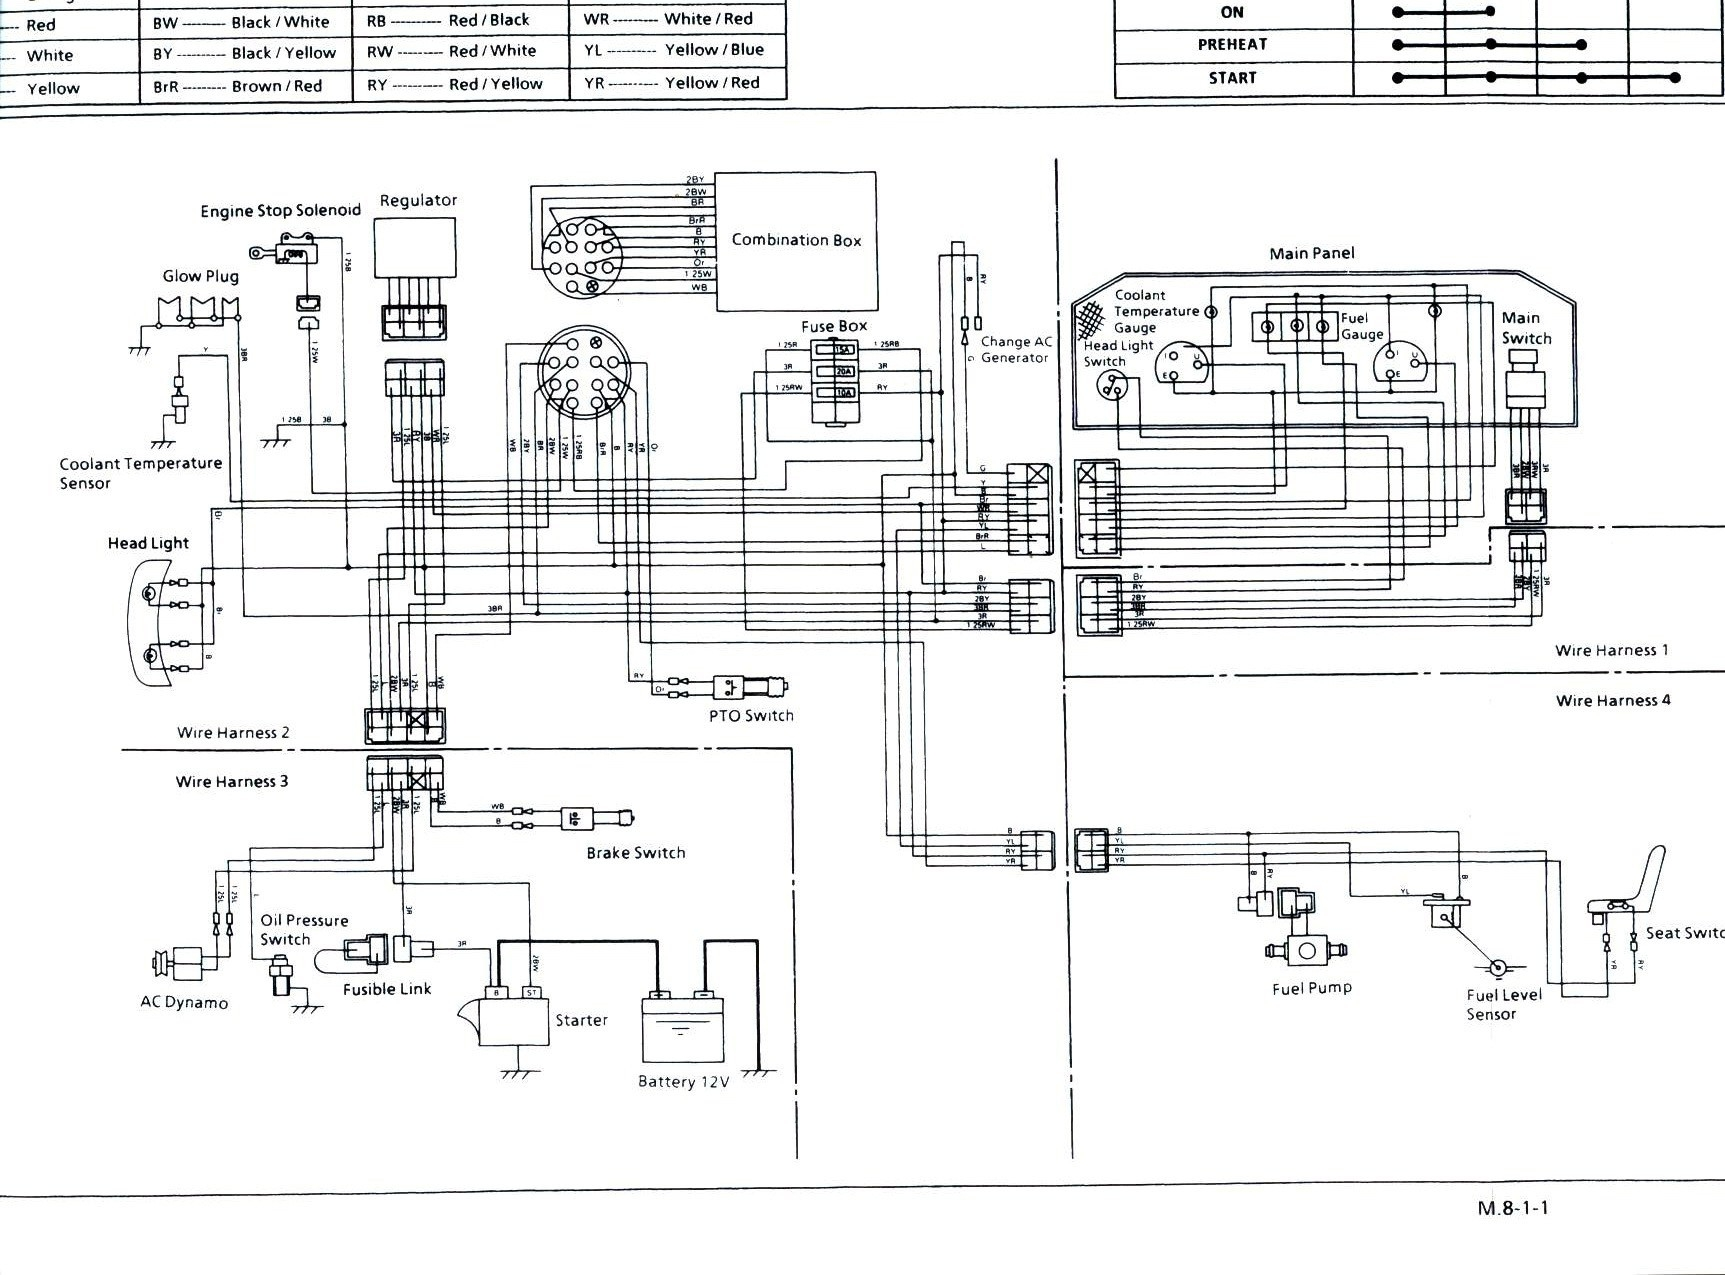 hight resolution of d 1500 kubota engine diagram wiring diagram load d 1500 kubota engine diagram